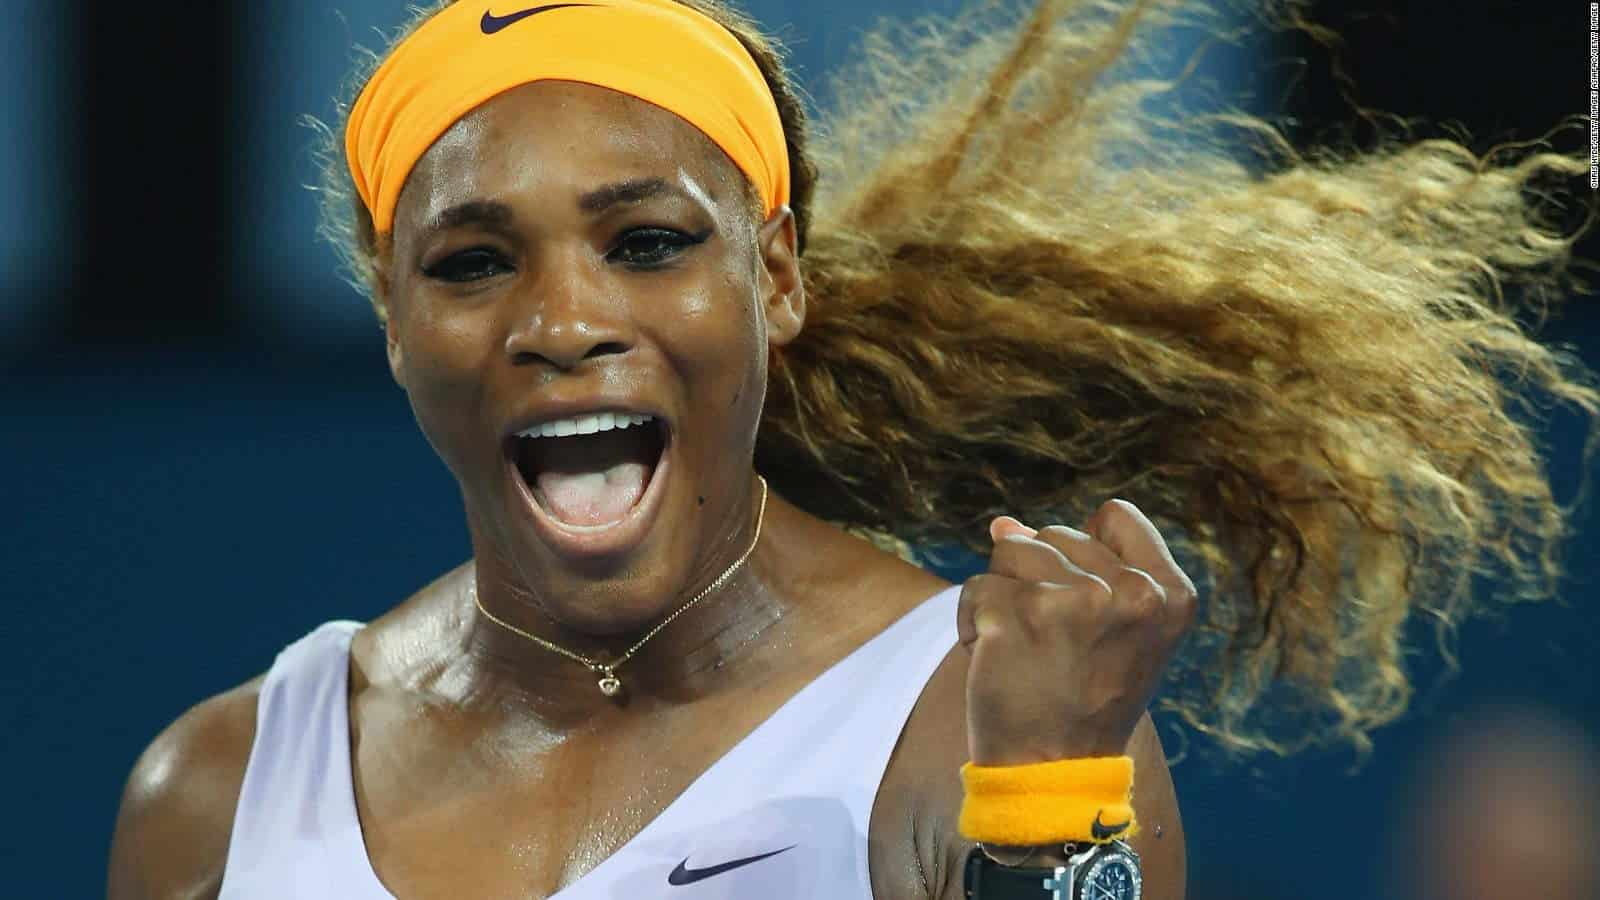 Coach: Serena Williams Will Play The French Open To Win It!